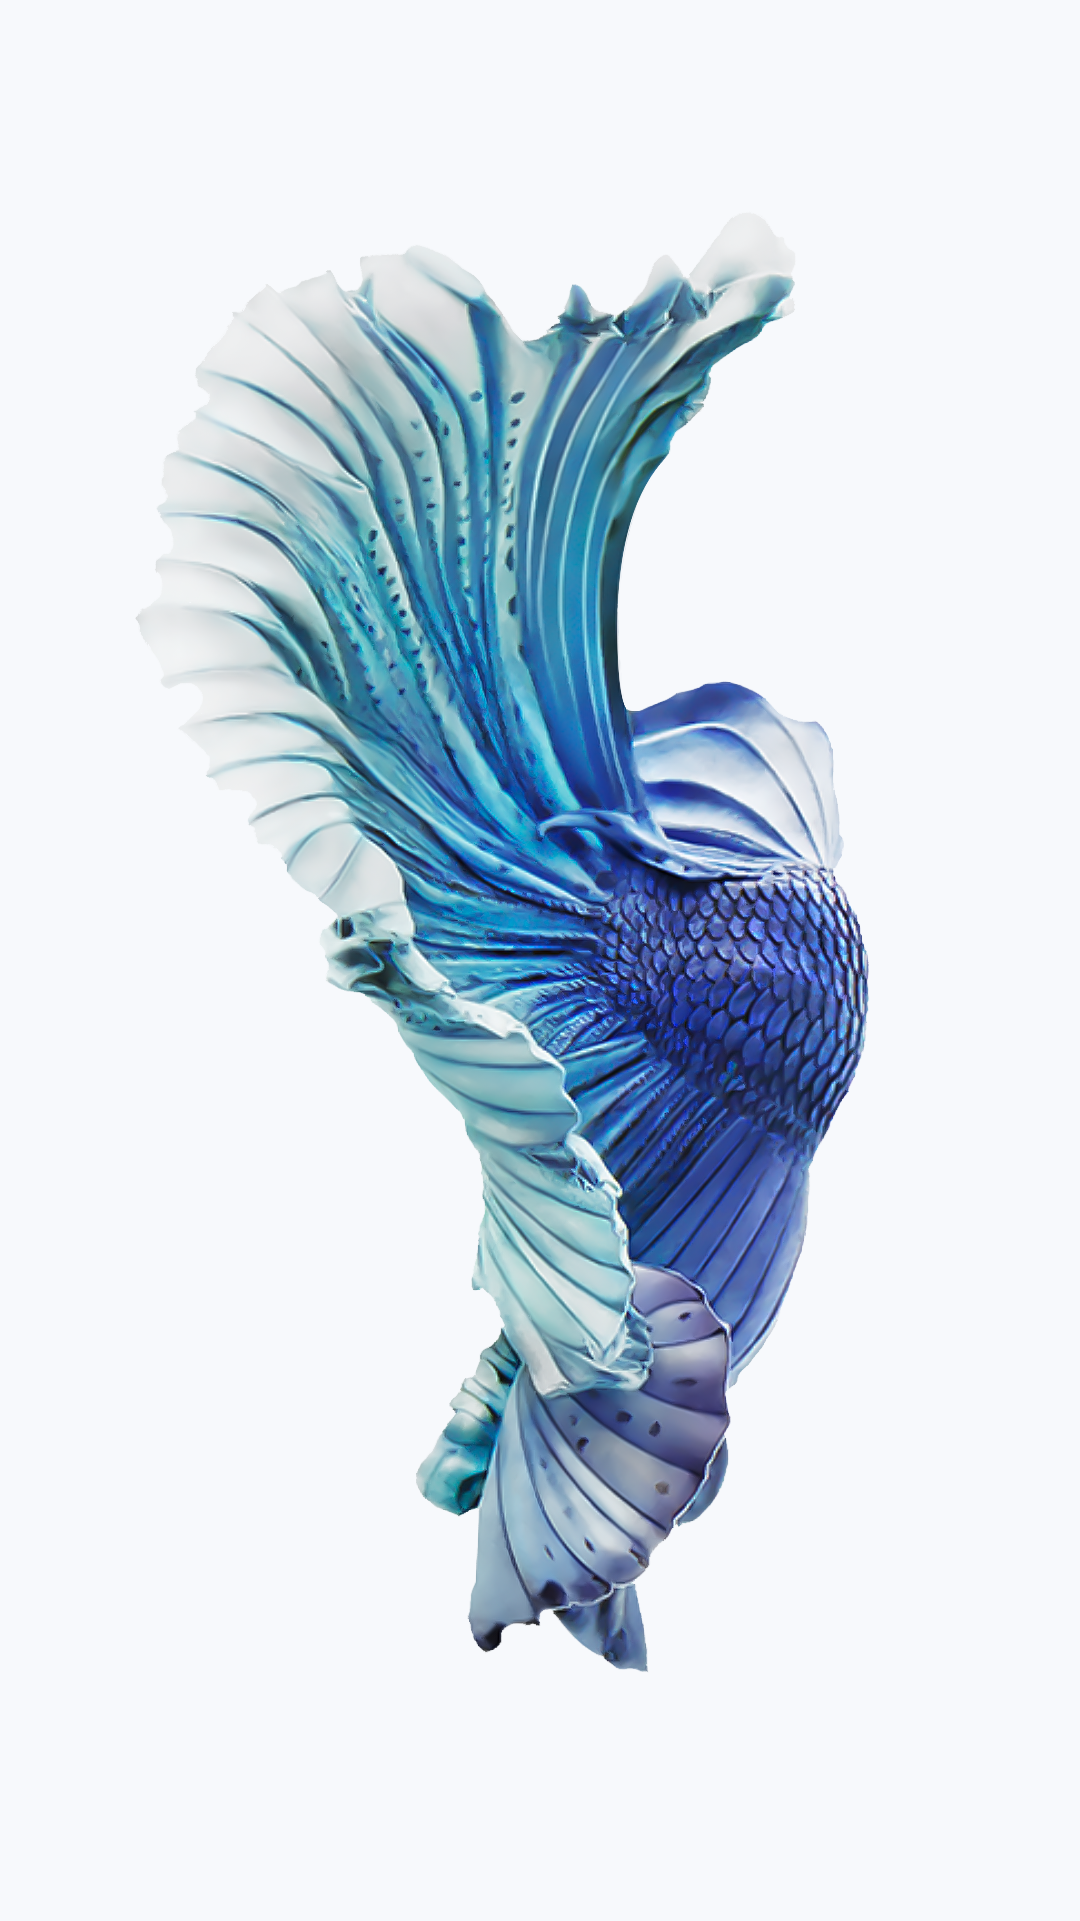 Iphone Fish Wallpapers Free Download Fish Wallpaper Iphone Iphone 6s Wallpaper Fish Wallpaper